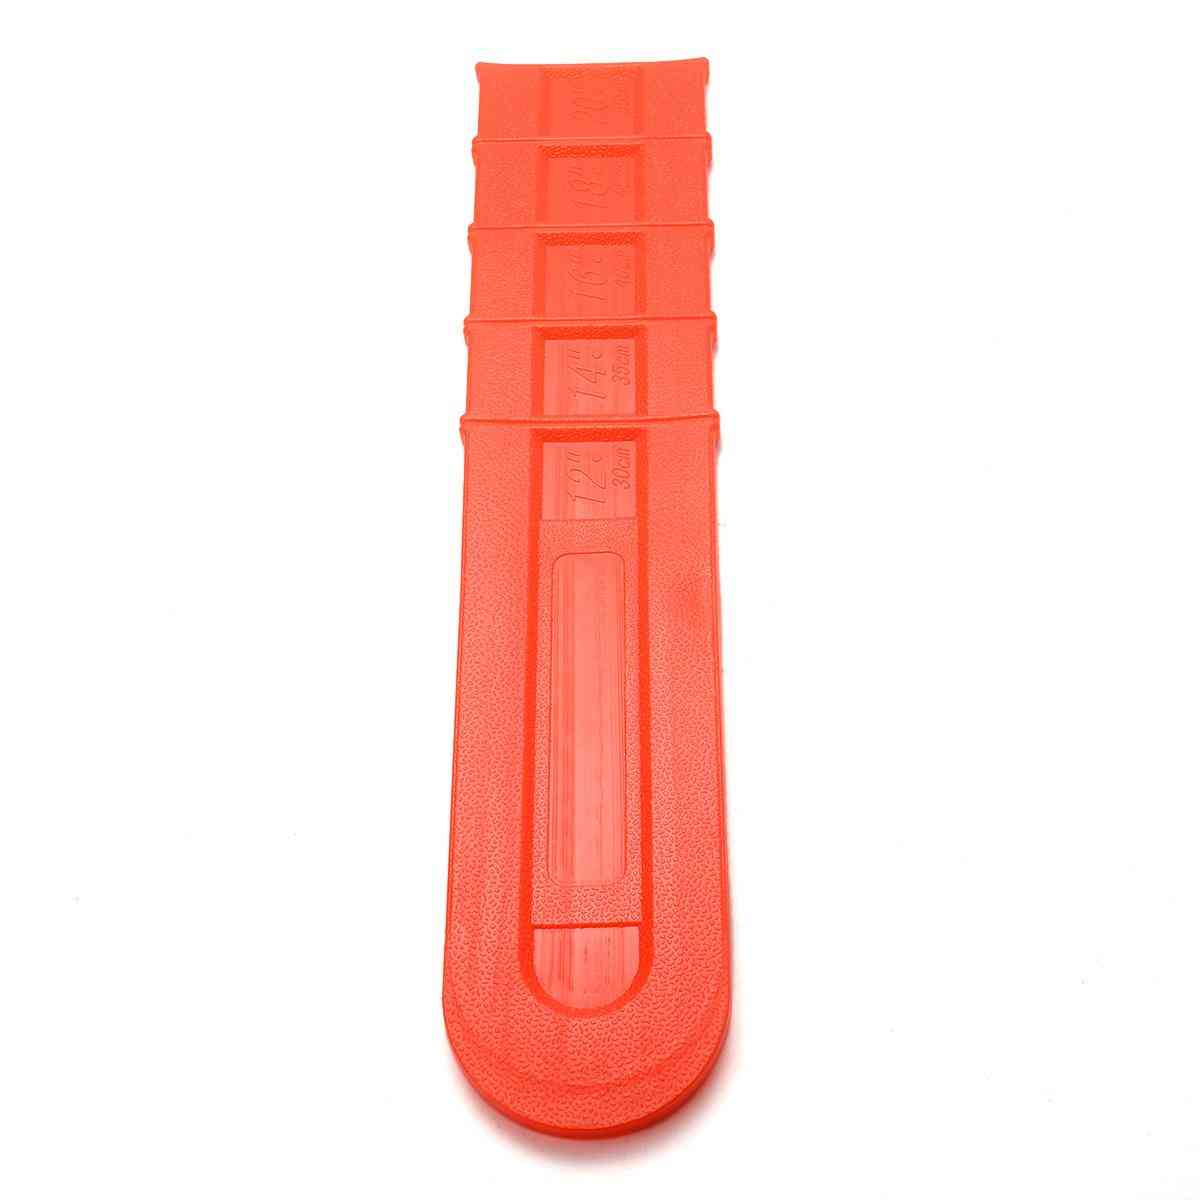 Chainsaw Bar Cover Scabbard Protector